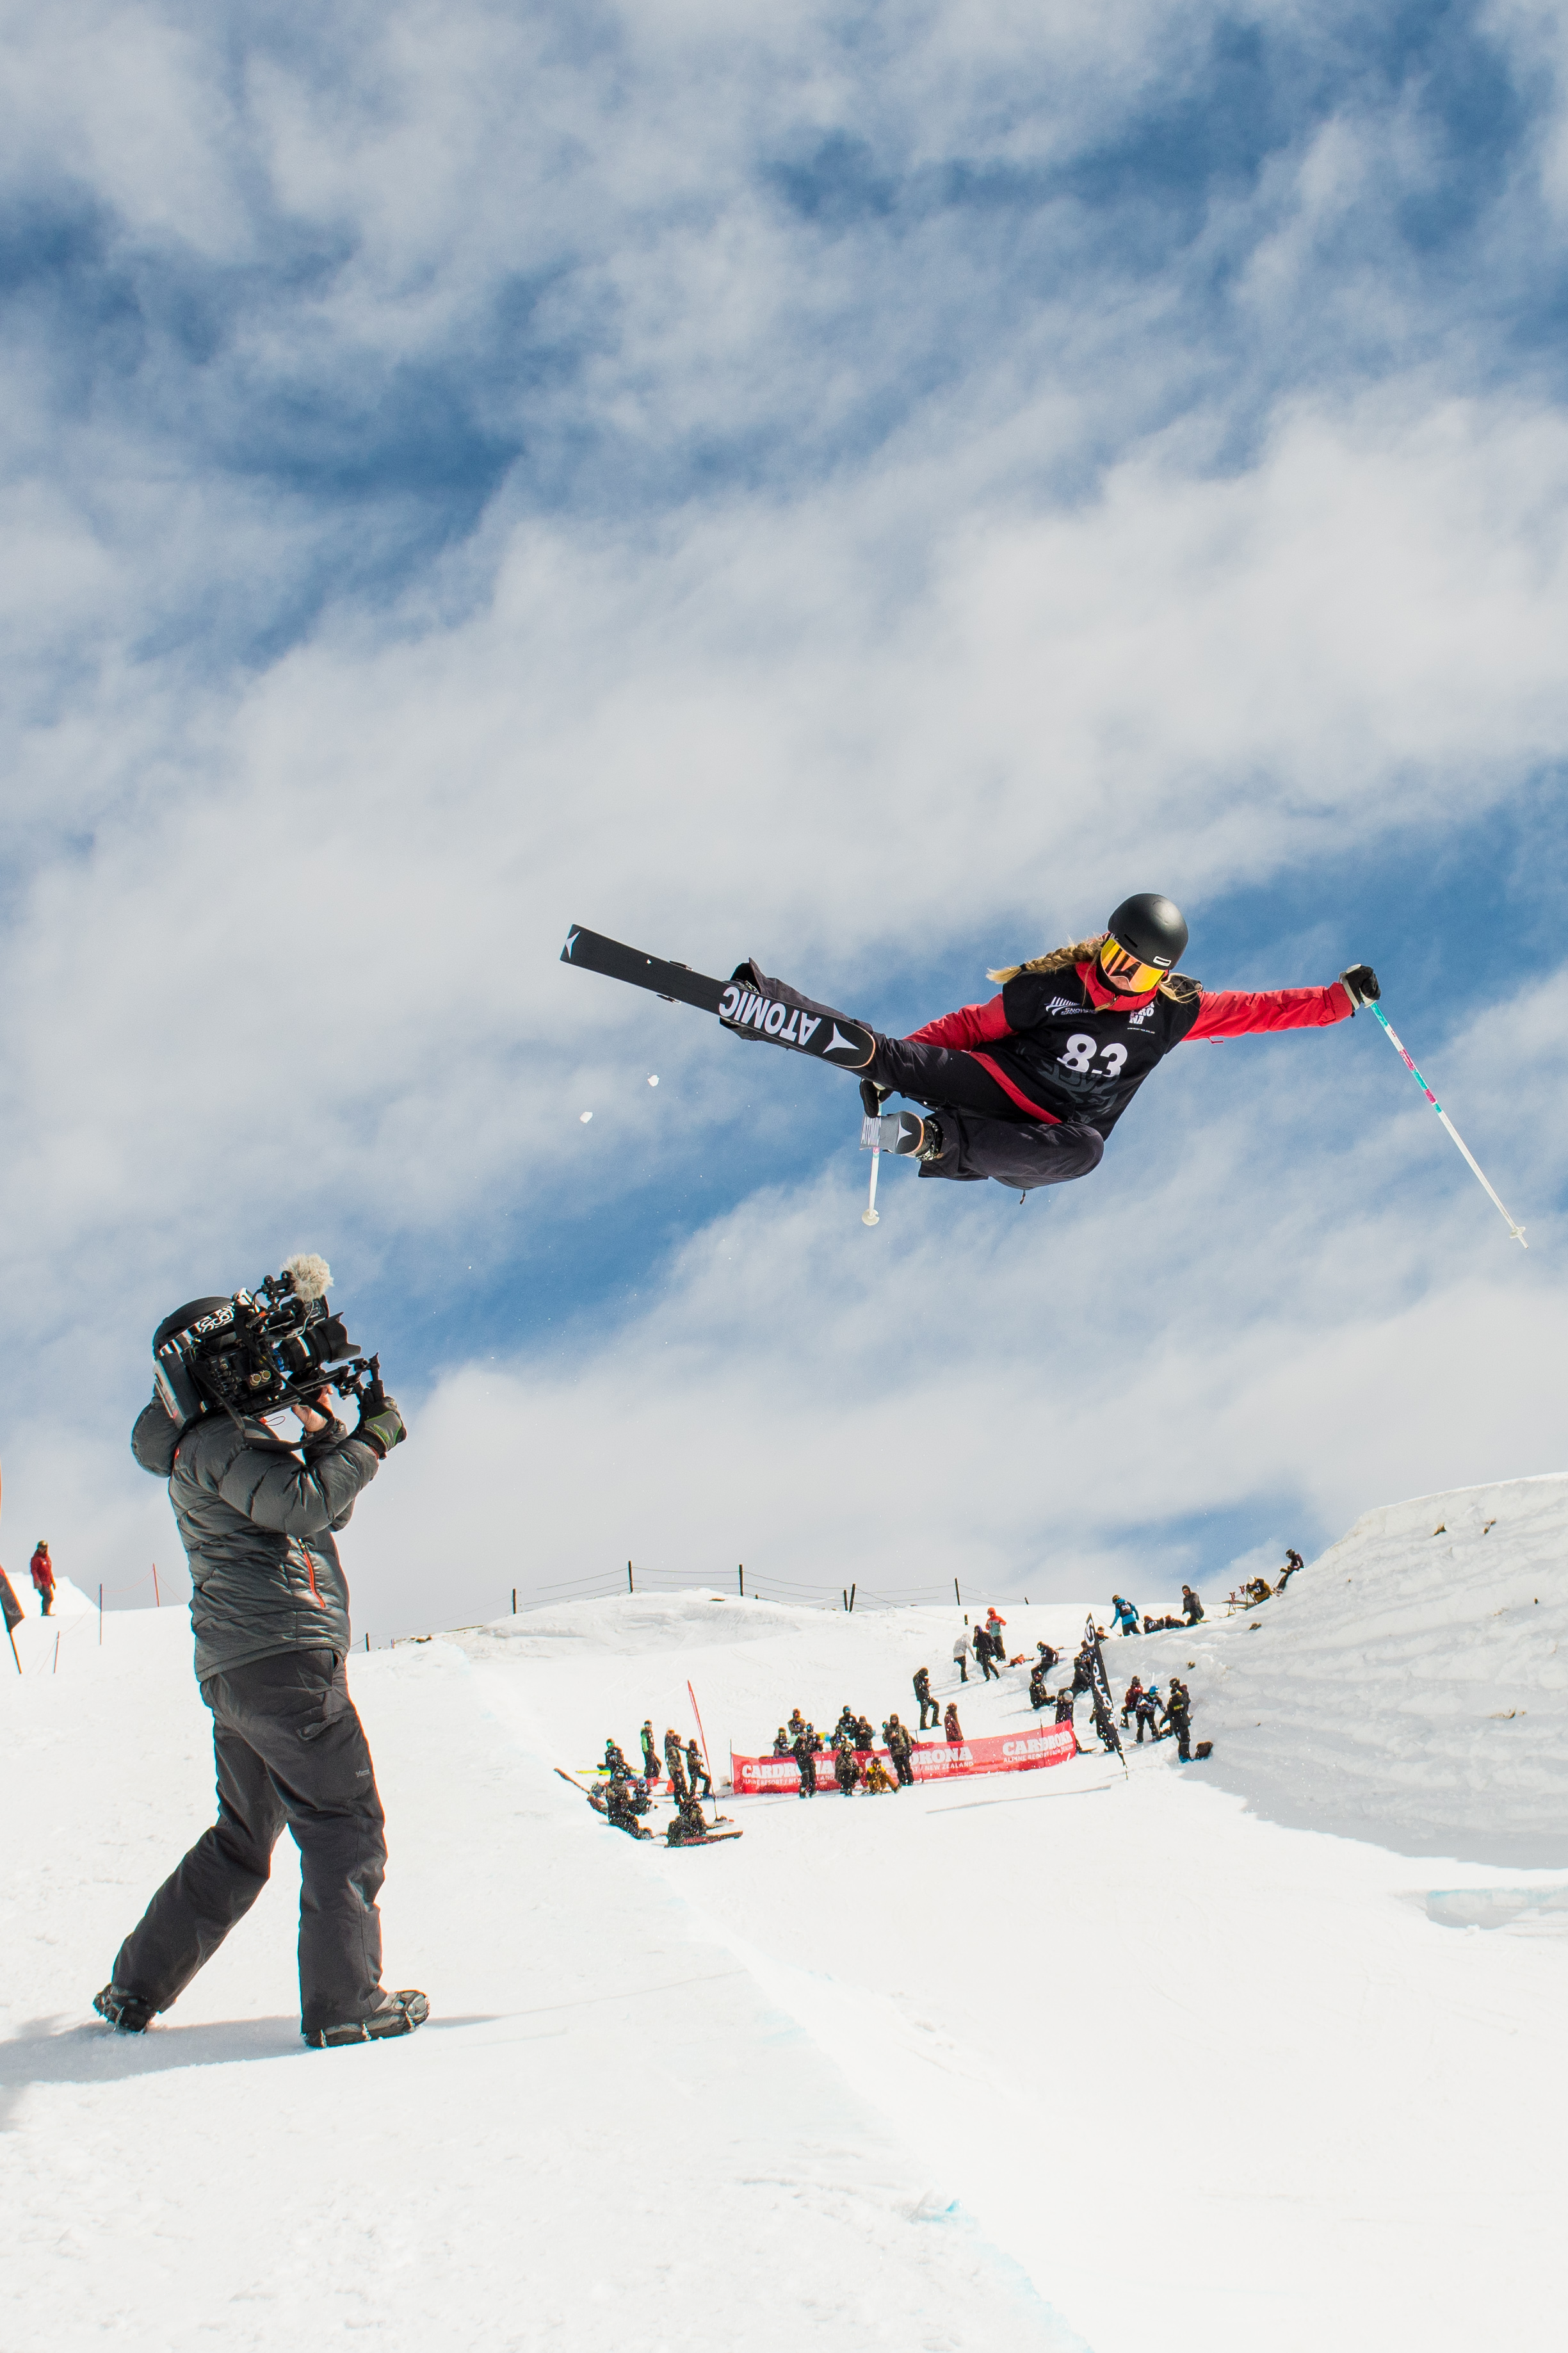 Snowboarding At The 2020 Olympic Winter Games.Freeski Athletes Named To New Zealand Team For Lausanne 2020